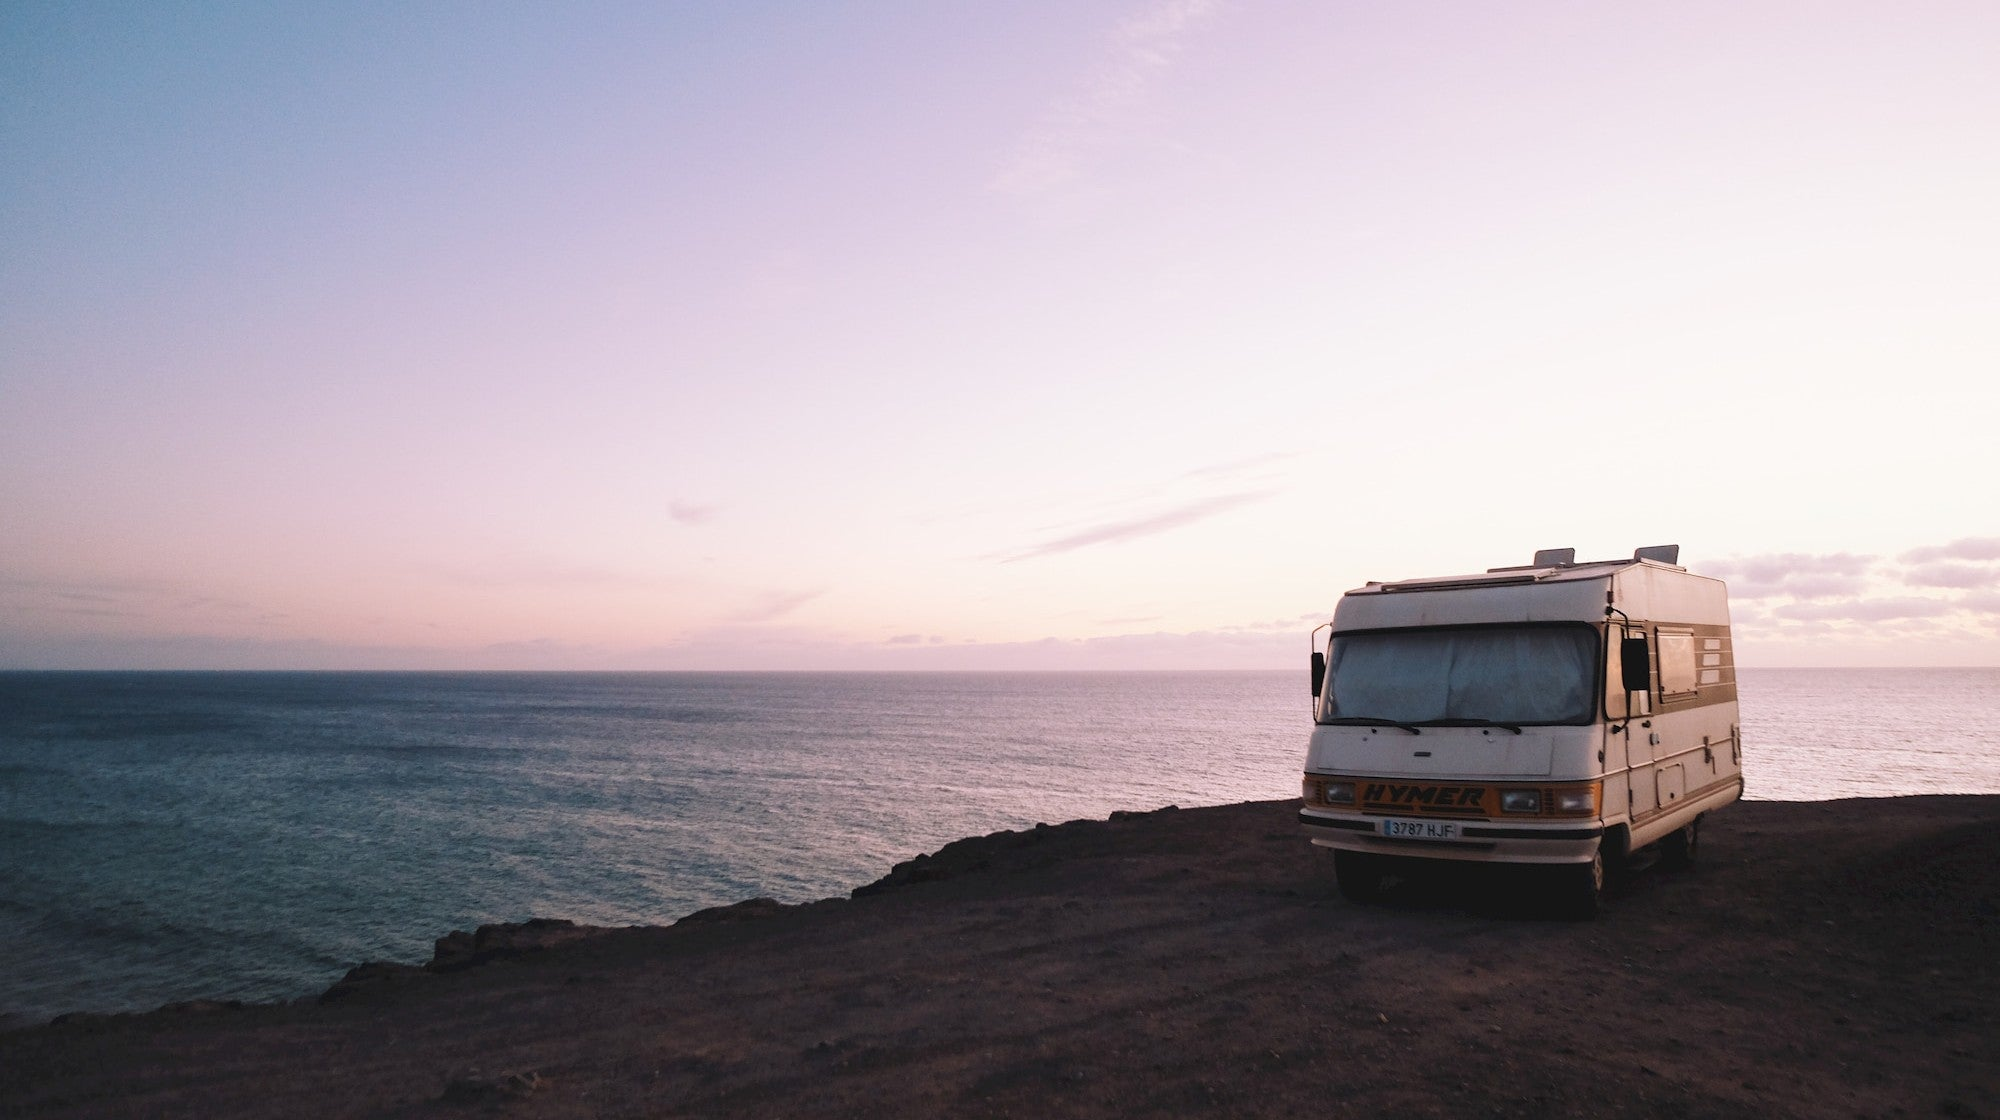 8 Rv Packing Tips For Beginners To Stay Safe And Have Fun